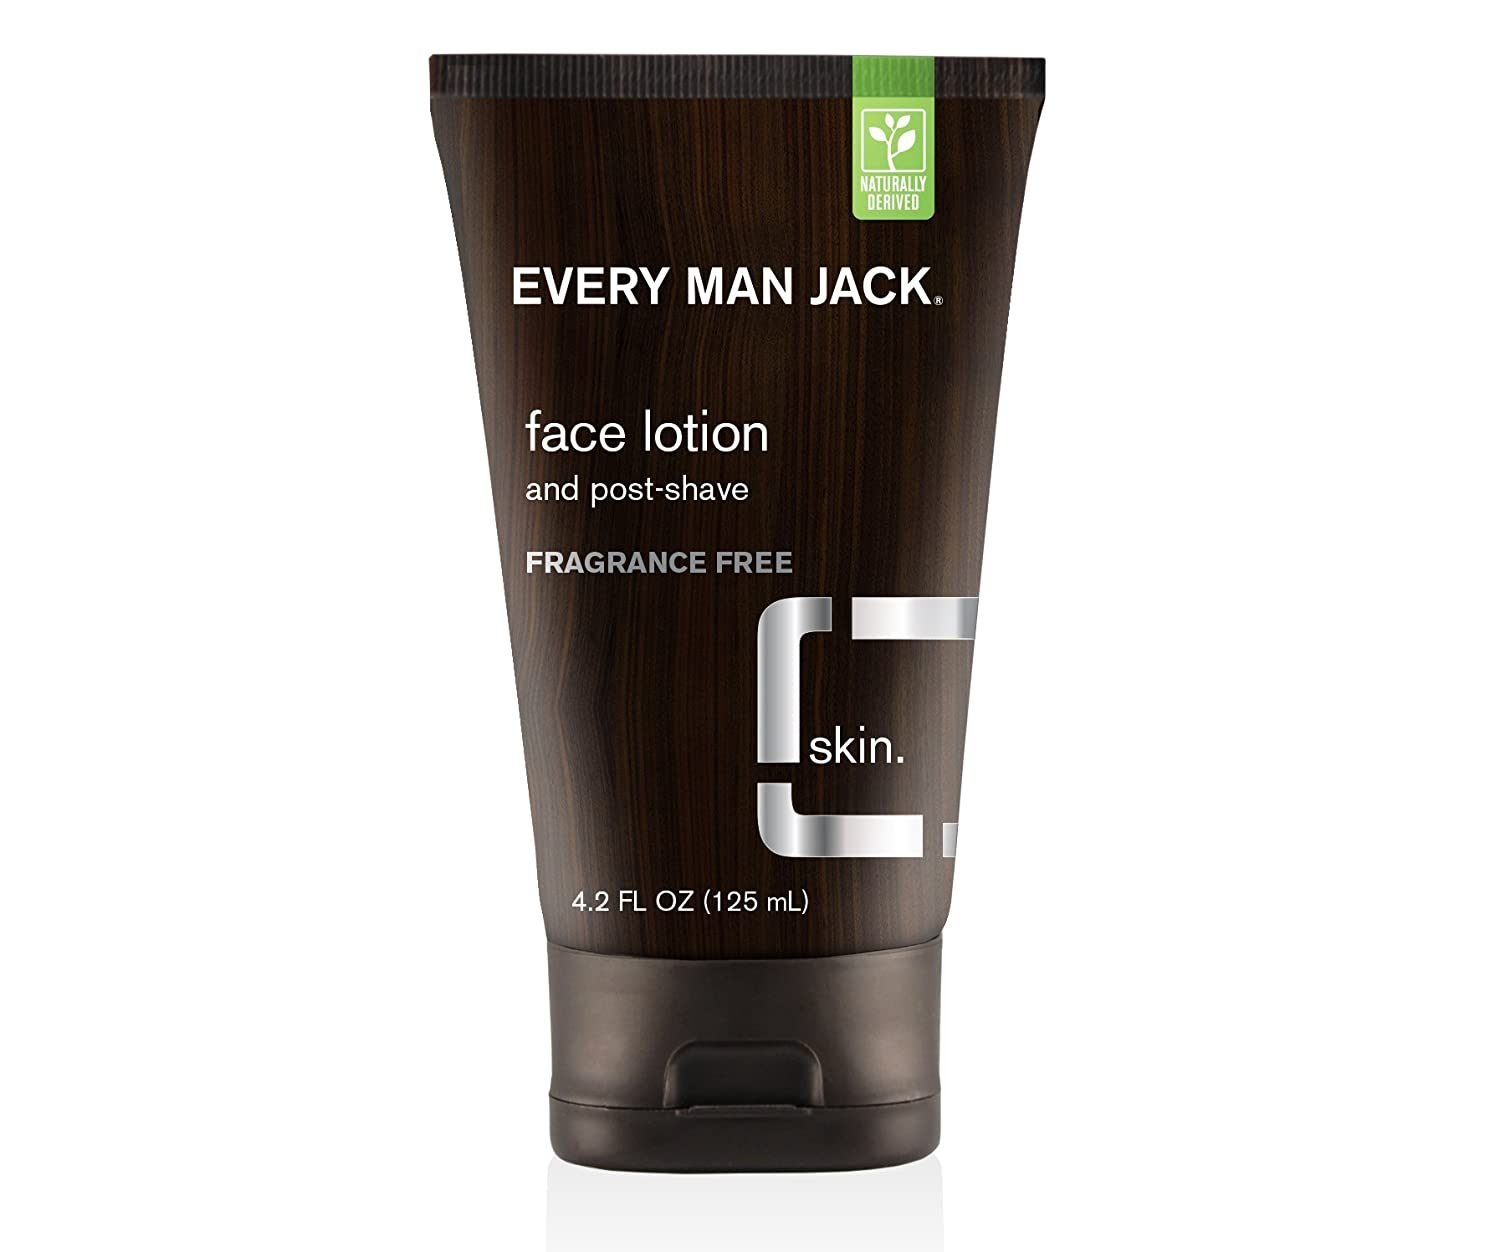 Every Man Jack Face Lotion and Post Shave